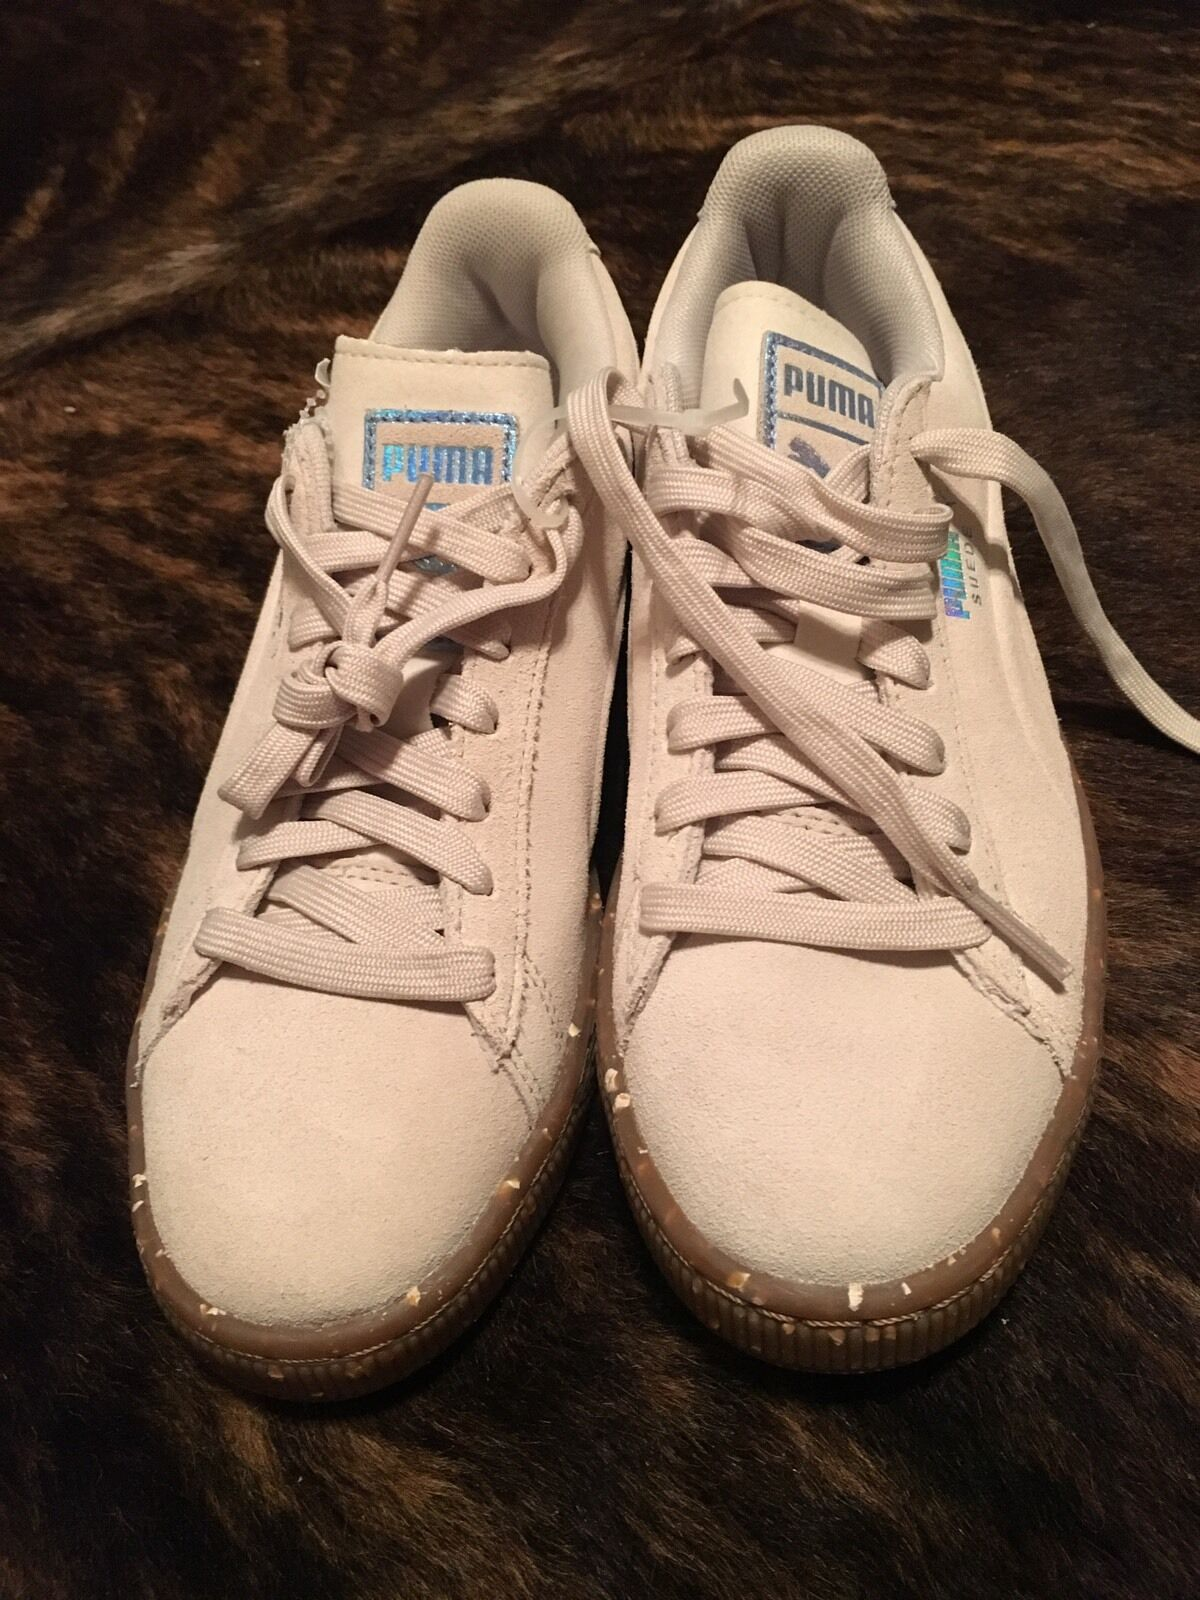 Puma Classic Basket Suede Shoes Tan Gum MENS 5.5, WOMENS 7 New NWOB Comfortable and good-looking